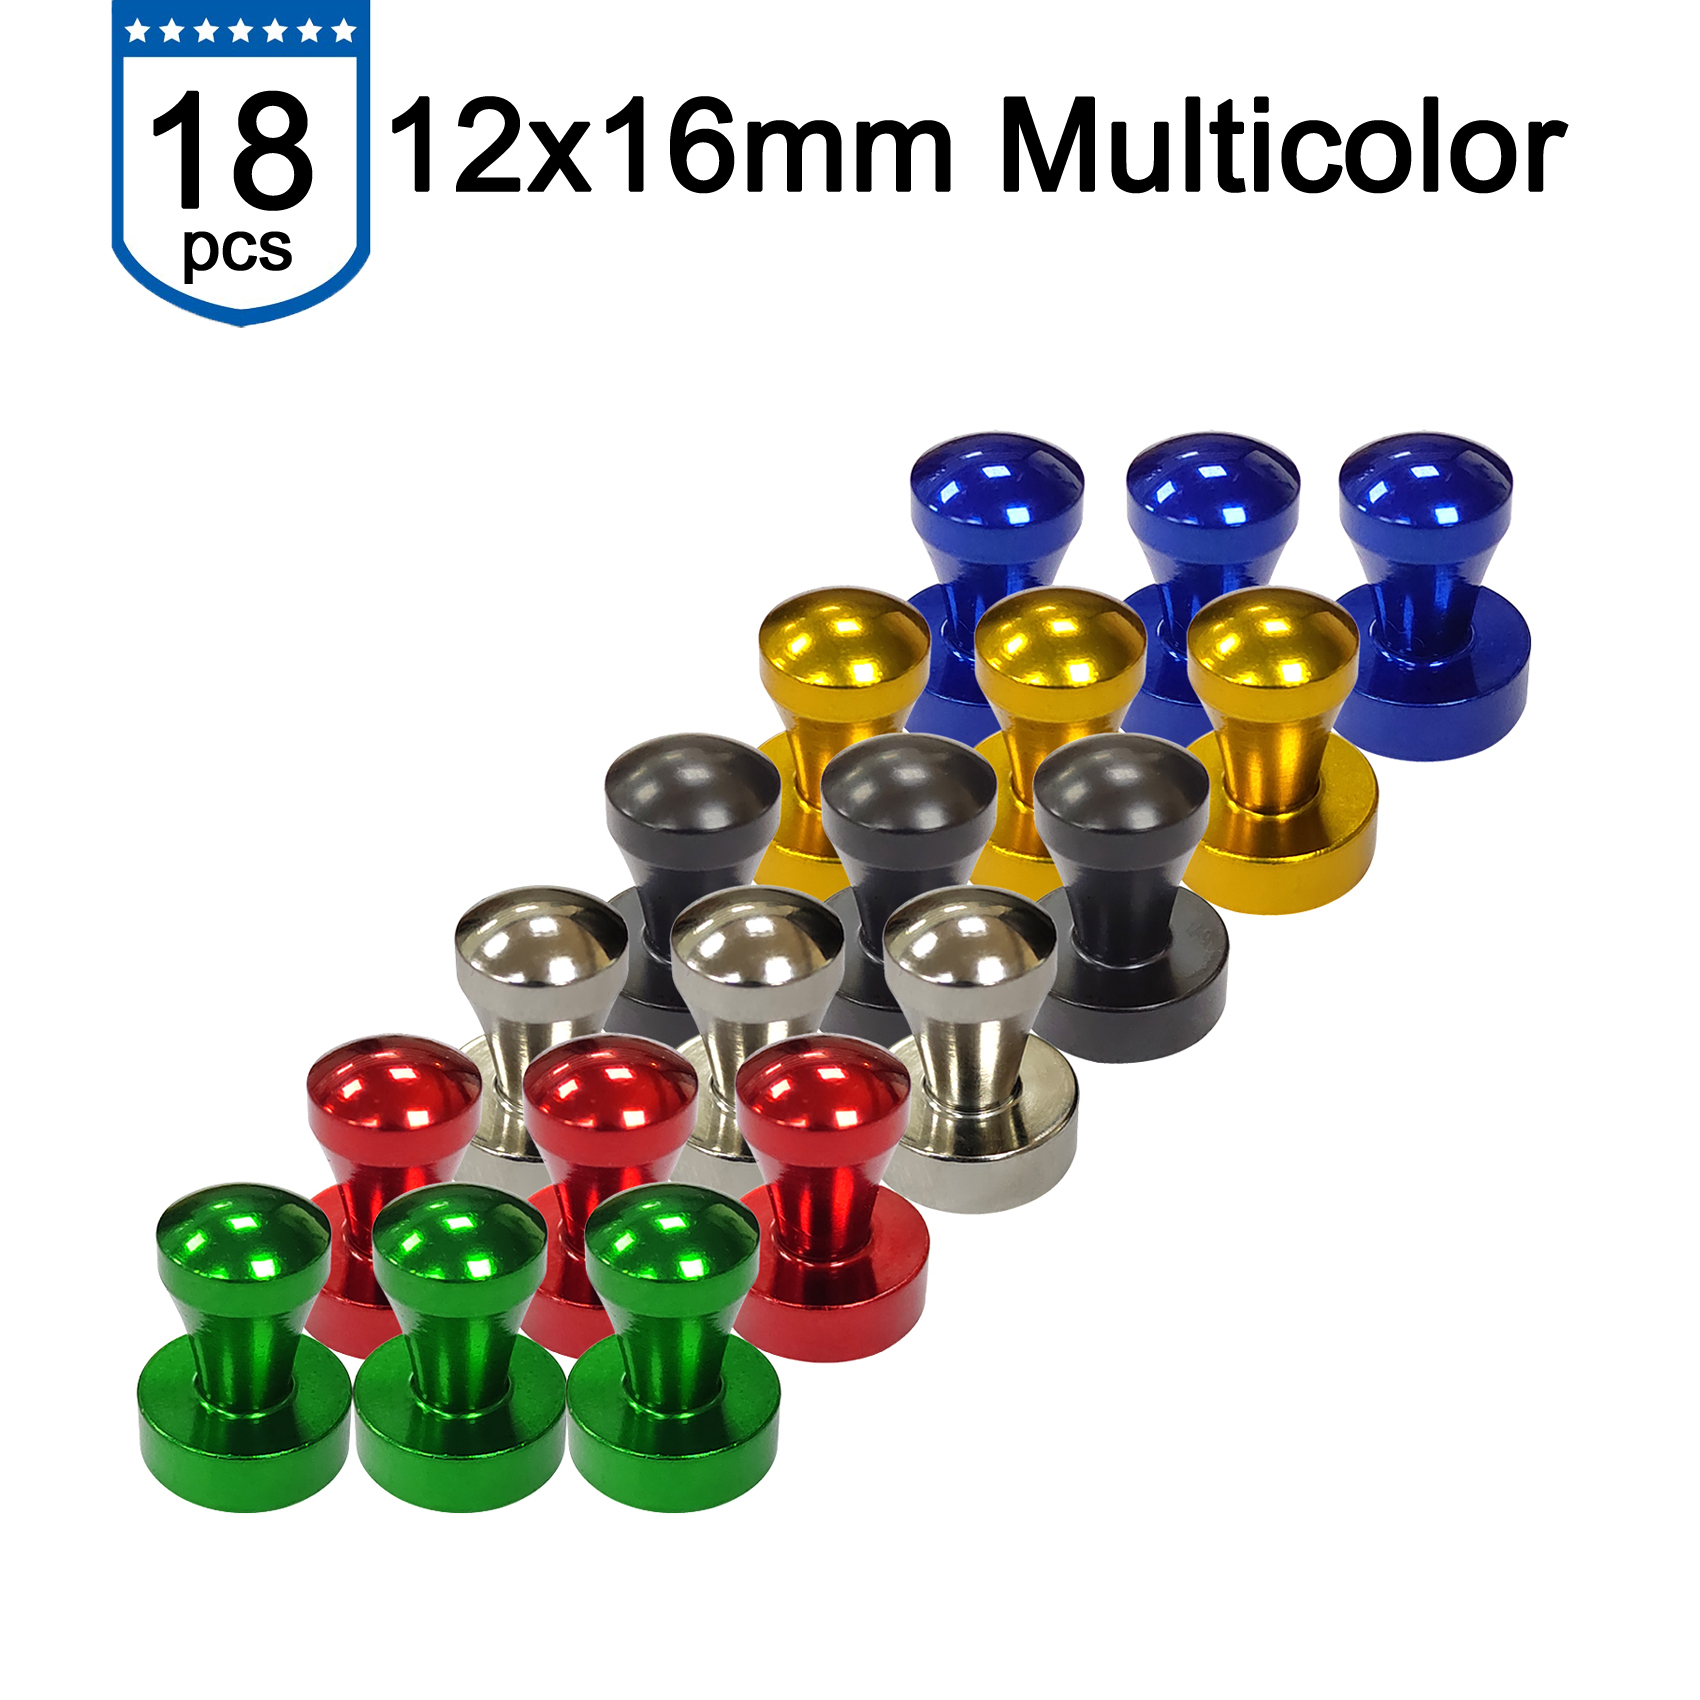 F EdsionR&D Magnet Push Pins D12x16 - Colorful Practical Long Lasting Metal No Rust Strong Magnets Use For Fridge Map Whiteboard